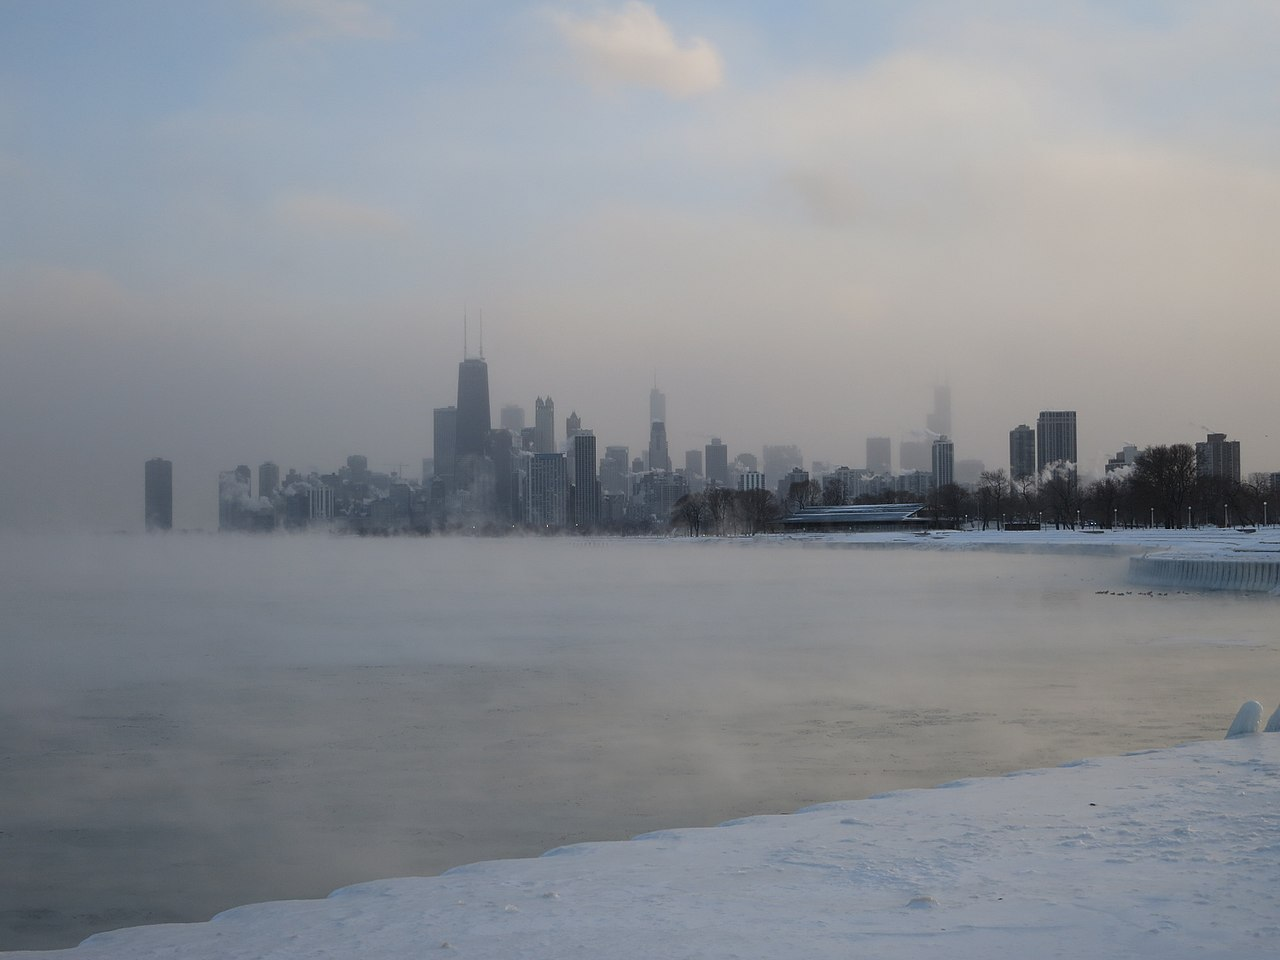 polar vortex in Chicago by edward stojakovic Wikimedia Commons